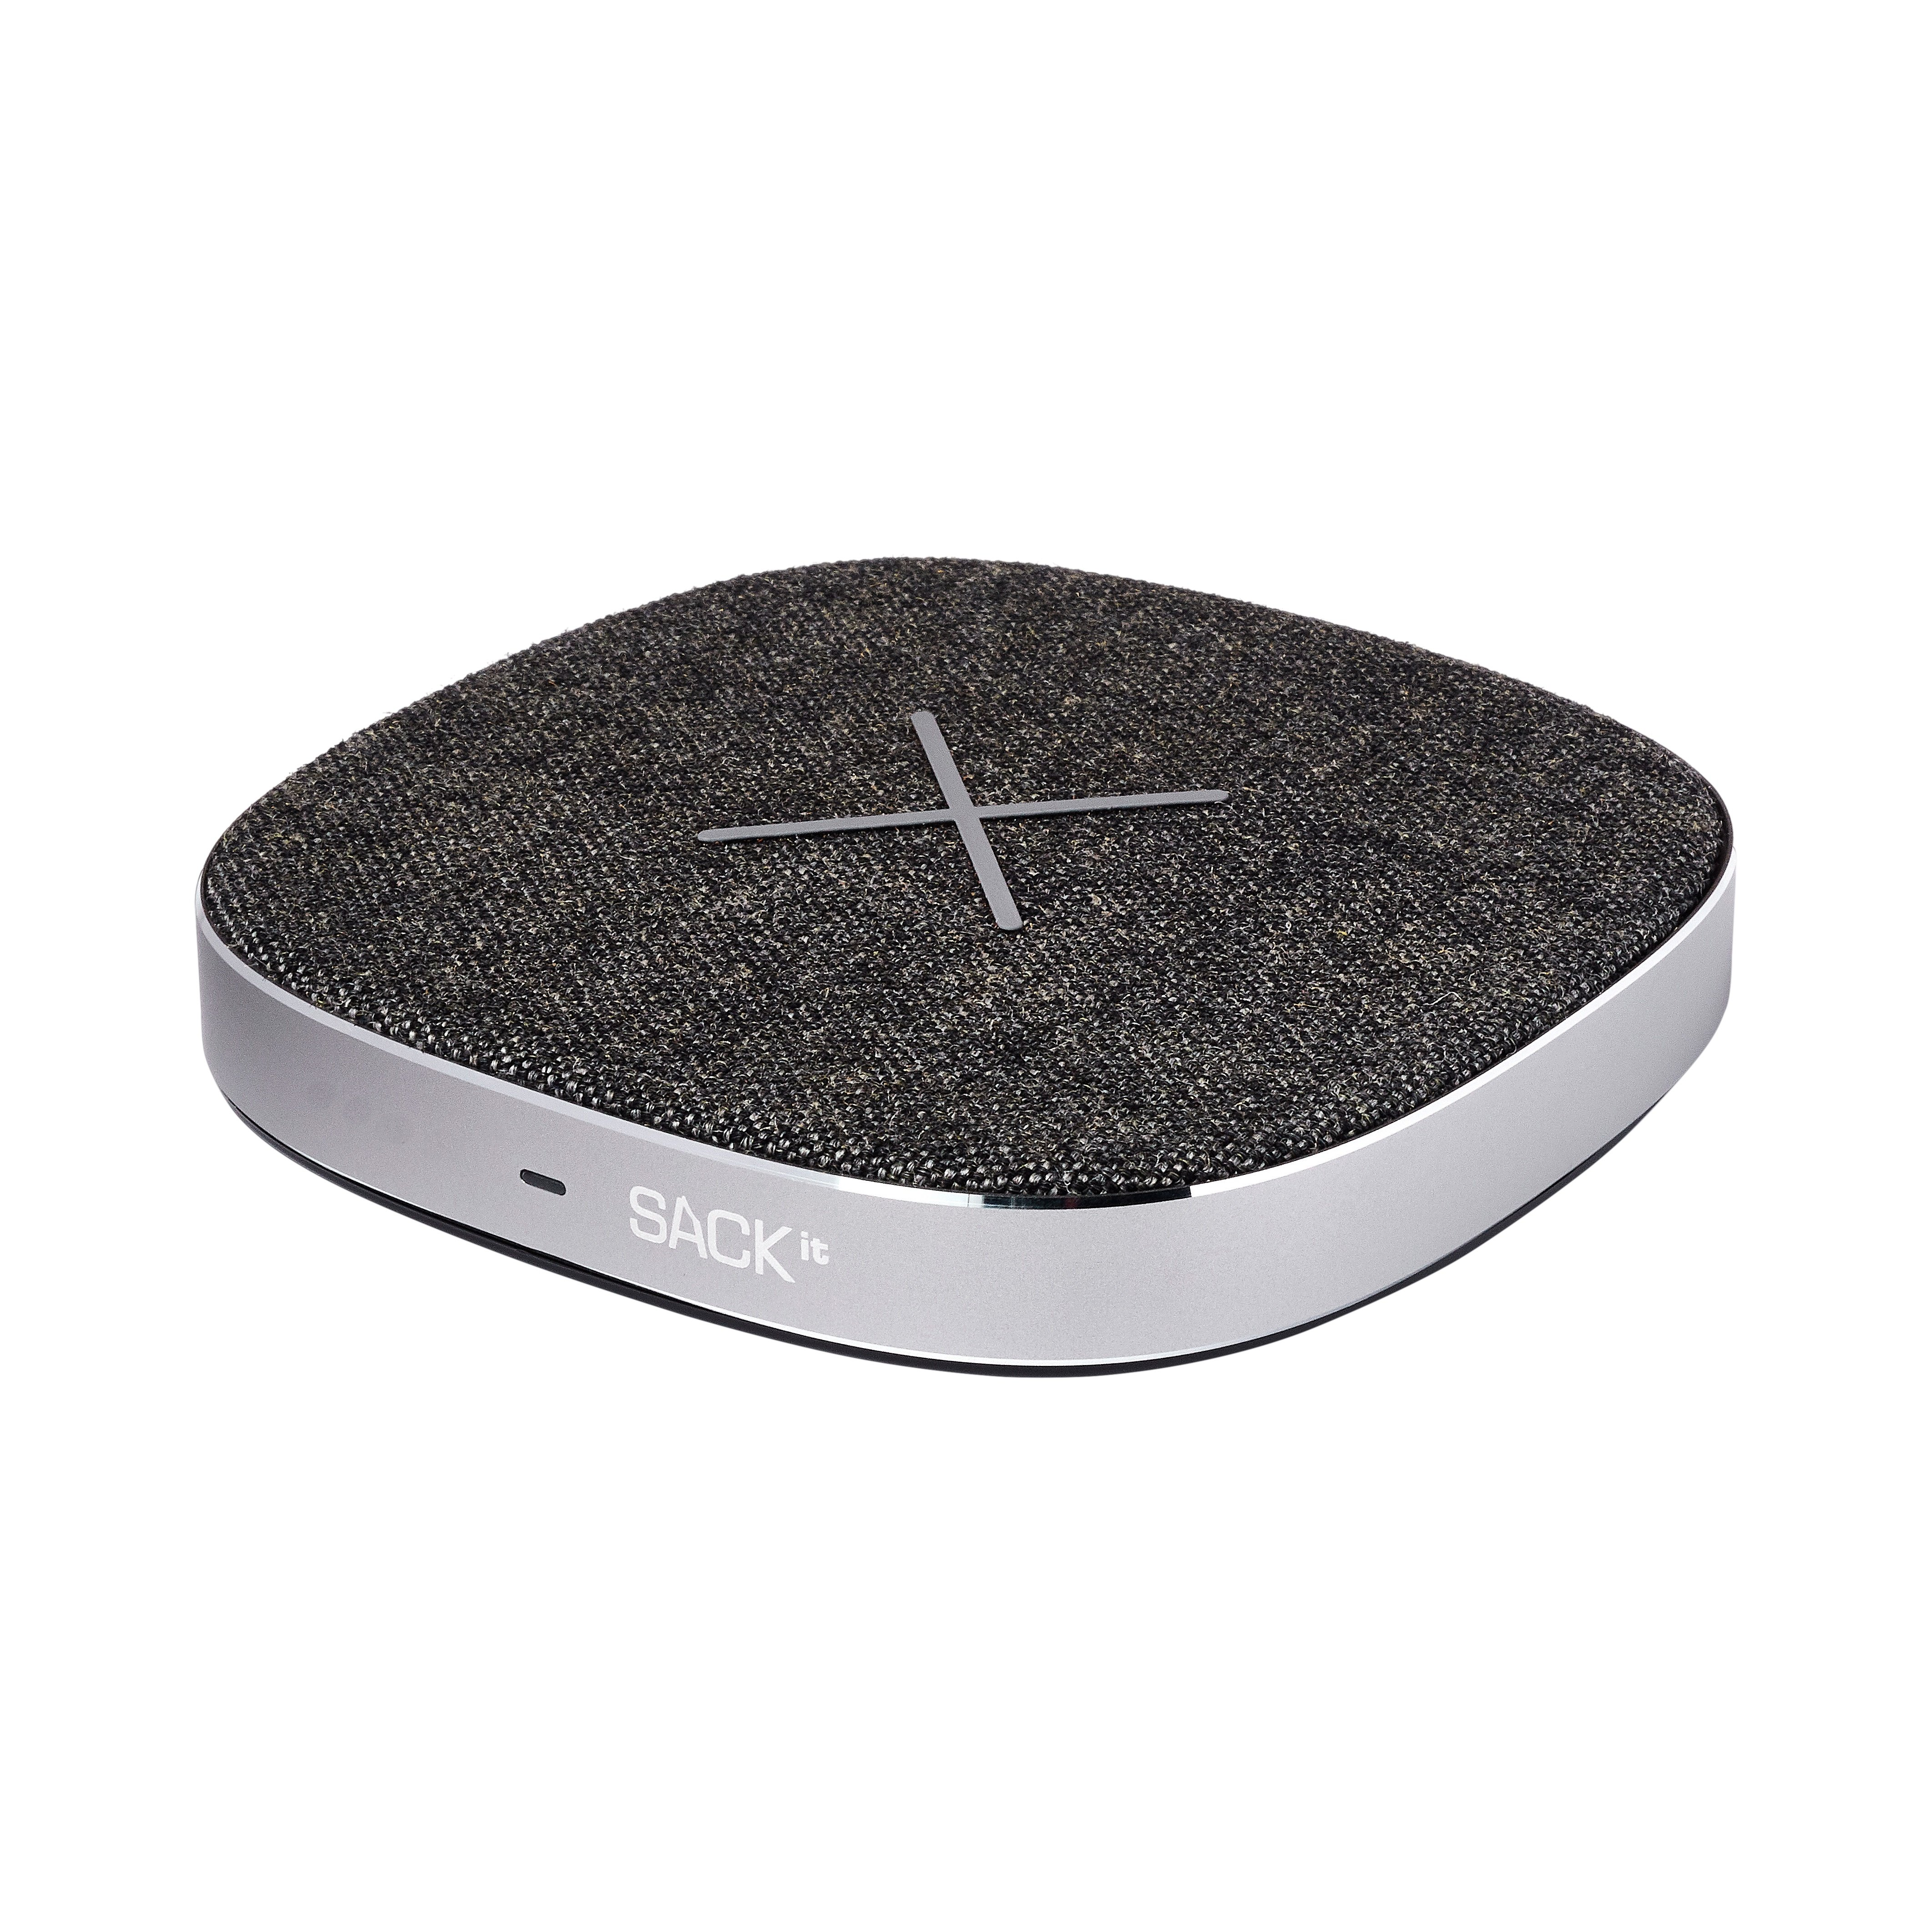 SACKit - CHARGEit Dock Wireless Charger